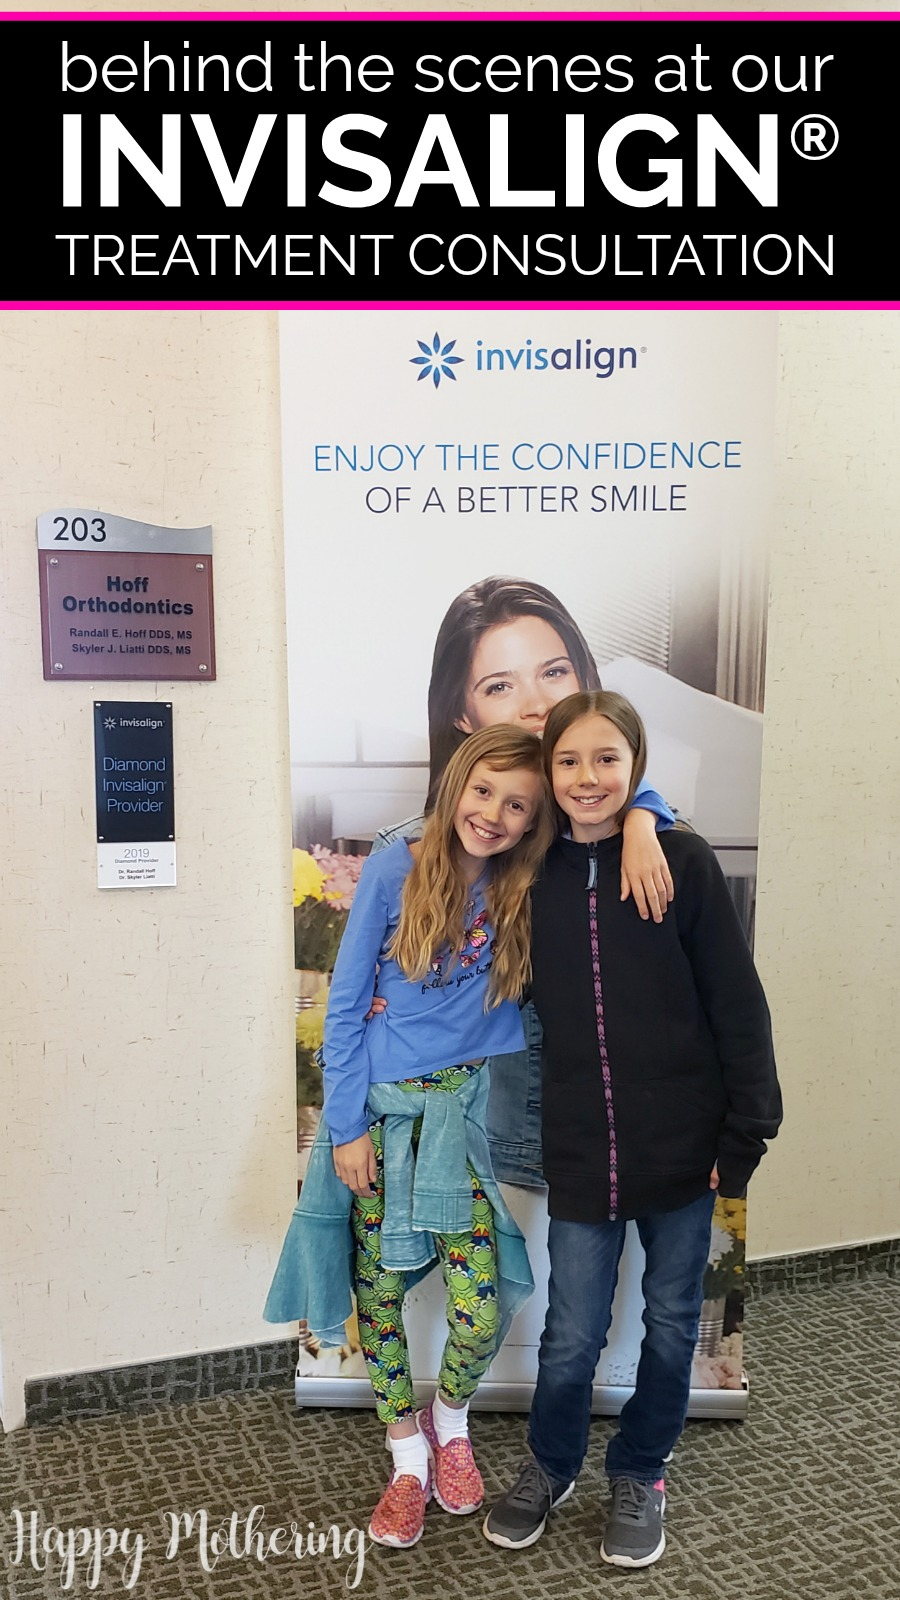 Have you considered Invisalign treatment for your child? Watch our initial Invisalign consultation and see if our daughters qualified for treatment!